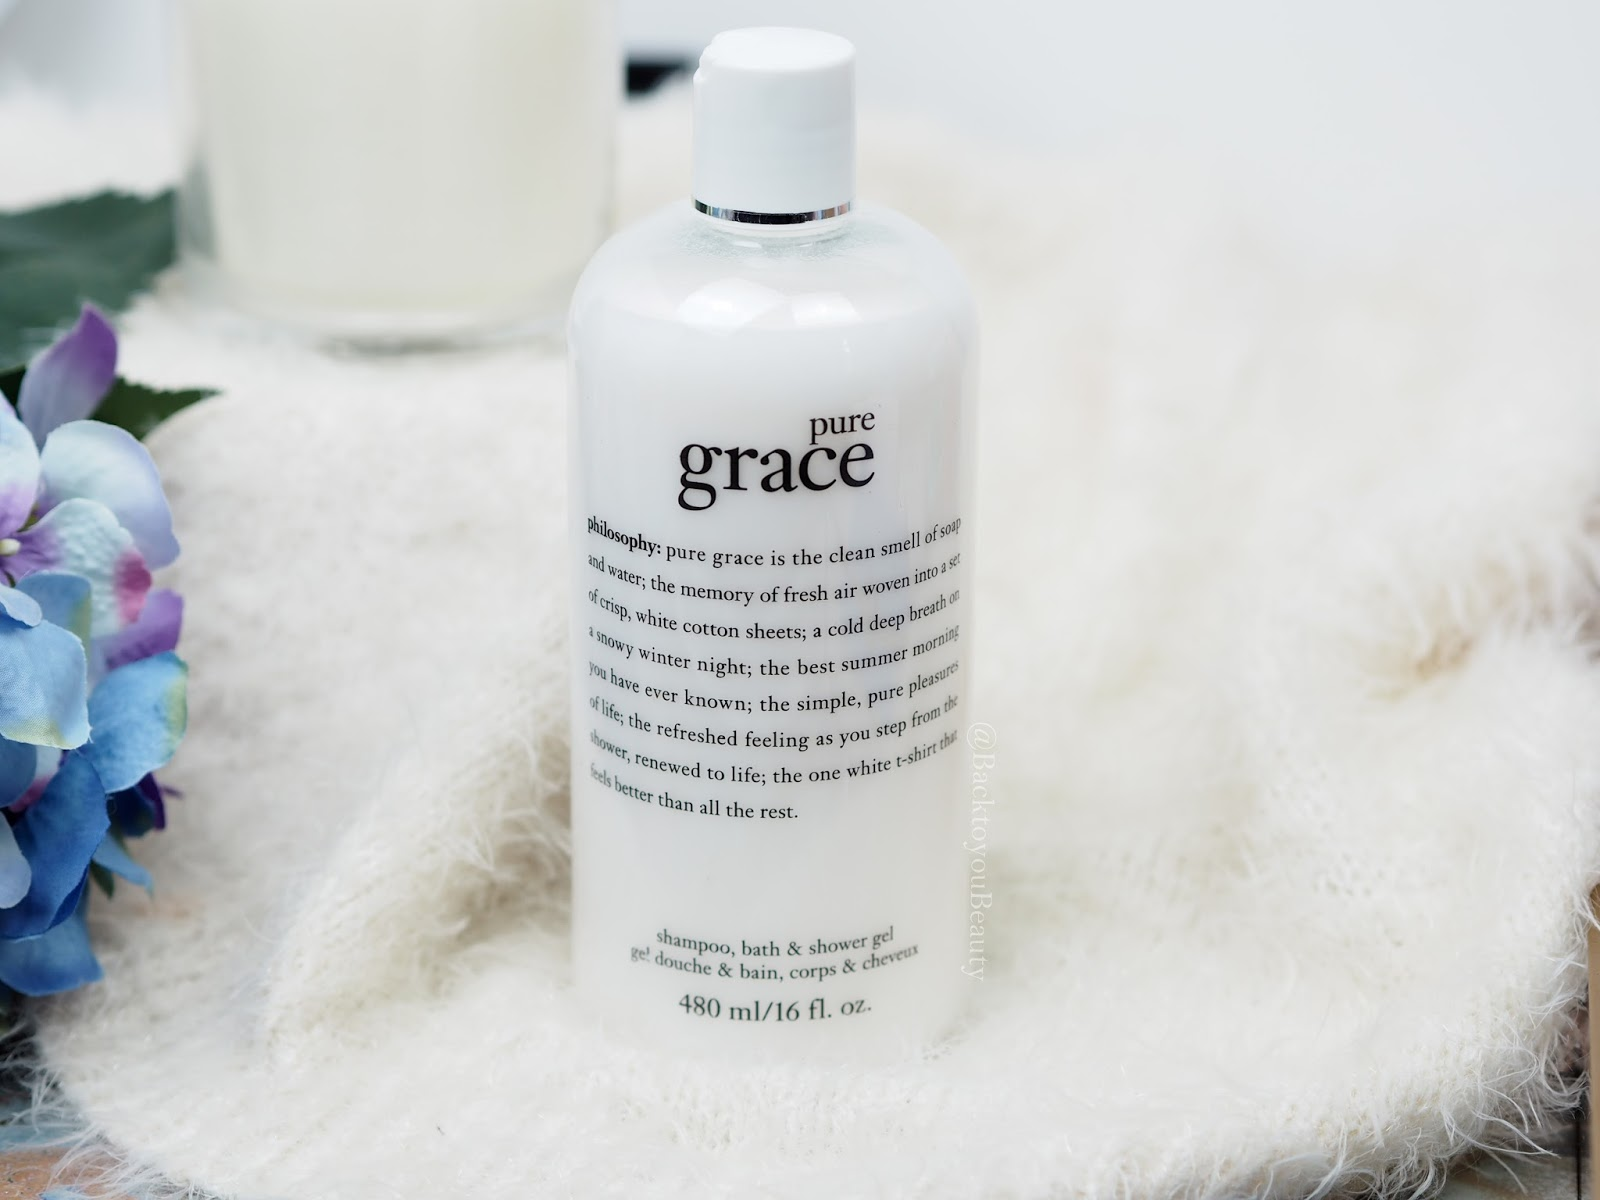 Pure Grace Shampoo, Bath & Shower Gel 480ml